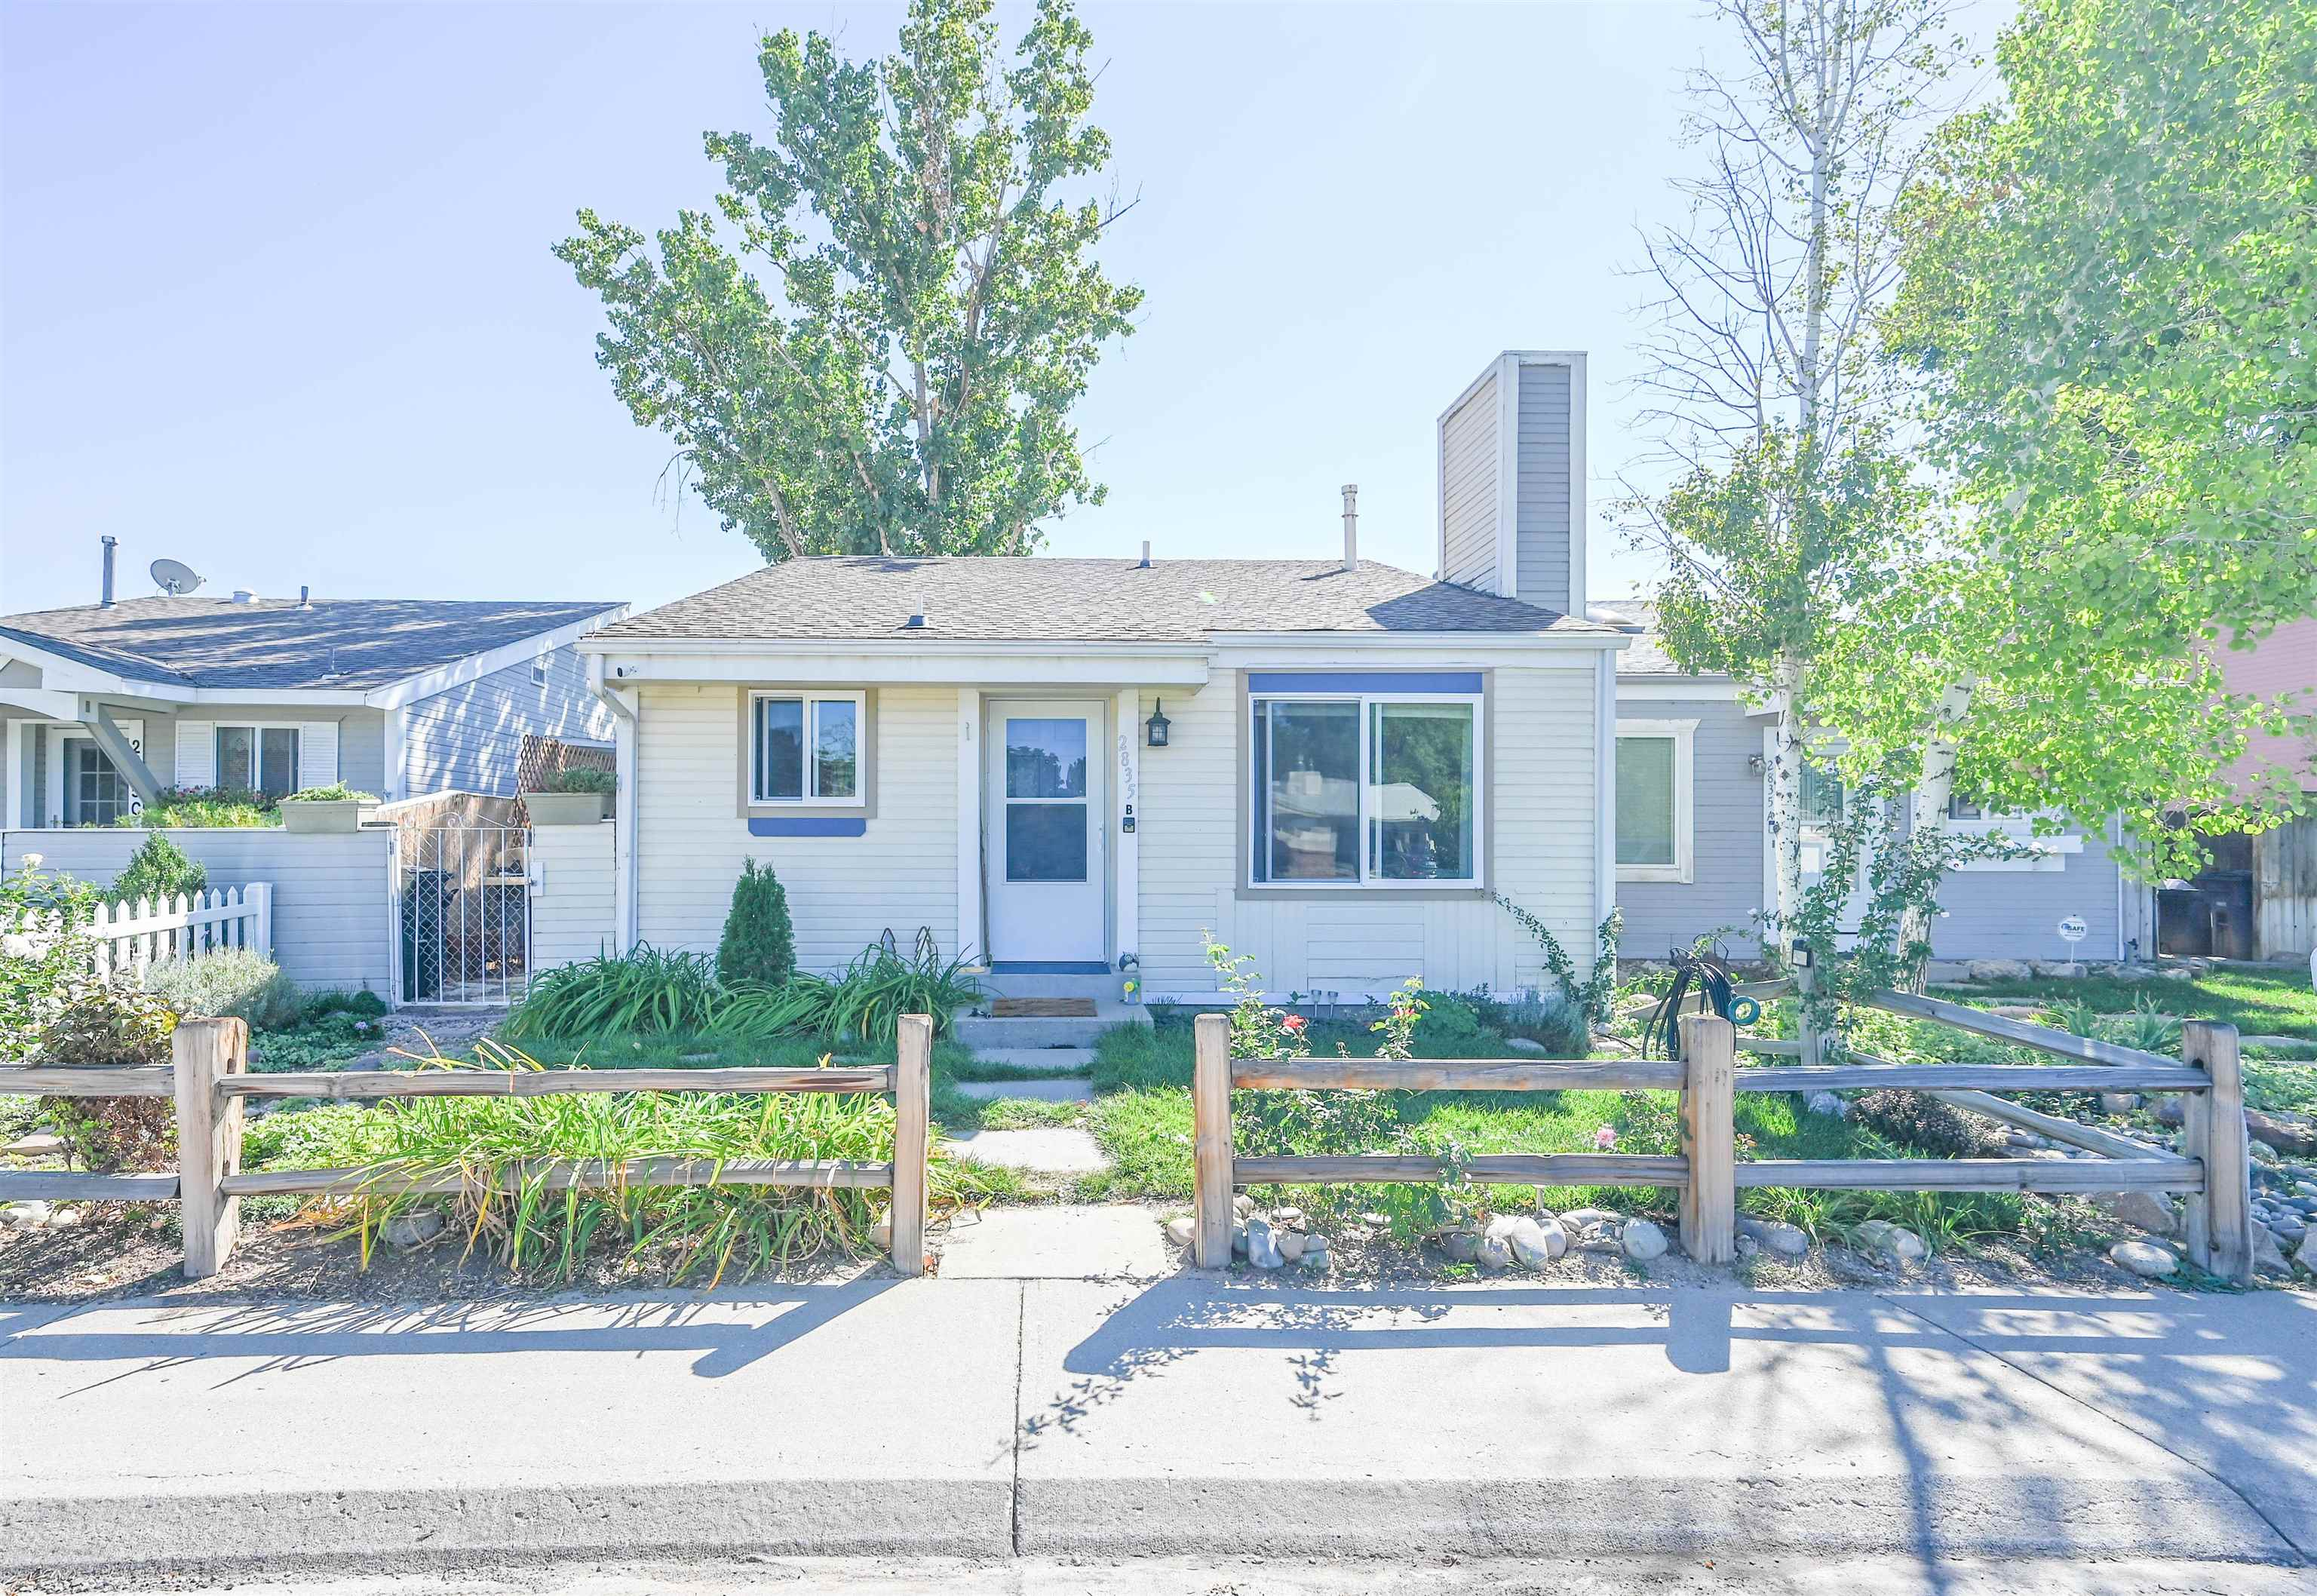 Completely updated ranch style townhome in a nice neighborhood.  Butcher block countertops, wood laminate flooring, stainless steel appliances all in an open concept.  Breeze air cooler with multiple drops for air to move throughout the house and keep it comfortable. NO HOA! Has a nice fenced in yard with lush vegetation and views of the Uncompahgre.  One car garage and additional parking in the alley. Enjoy cool fall evenings at nearby Teardrop and Village Nine Parks. Call today for a showing!!